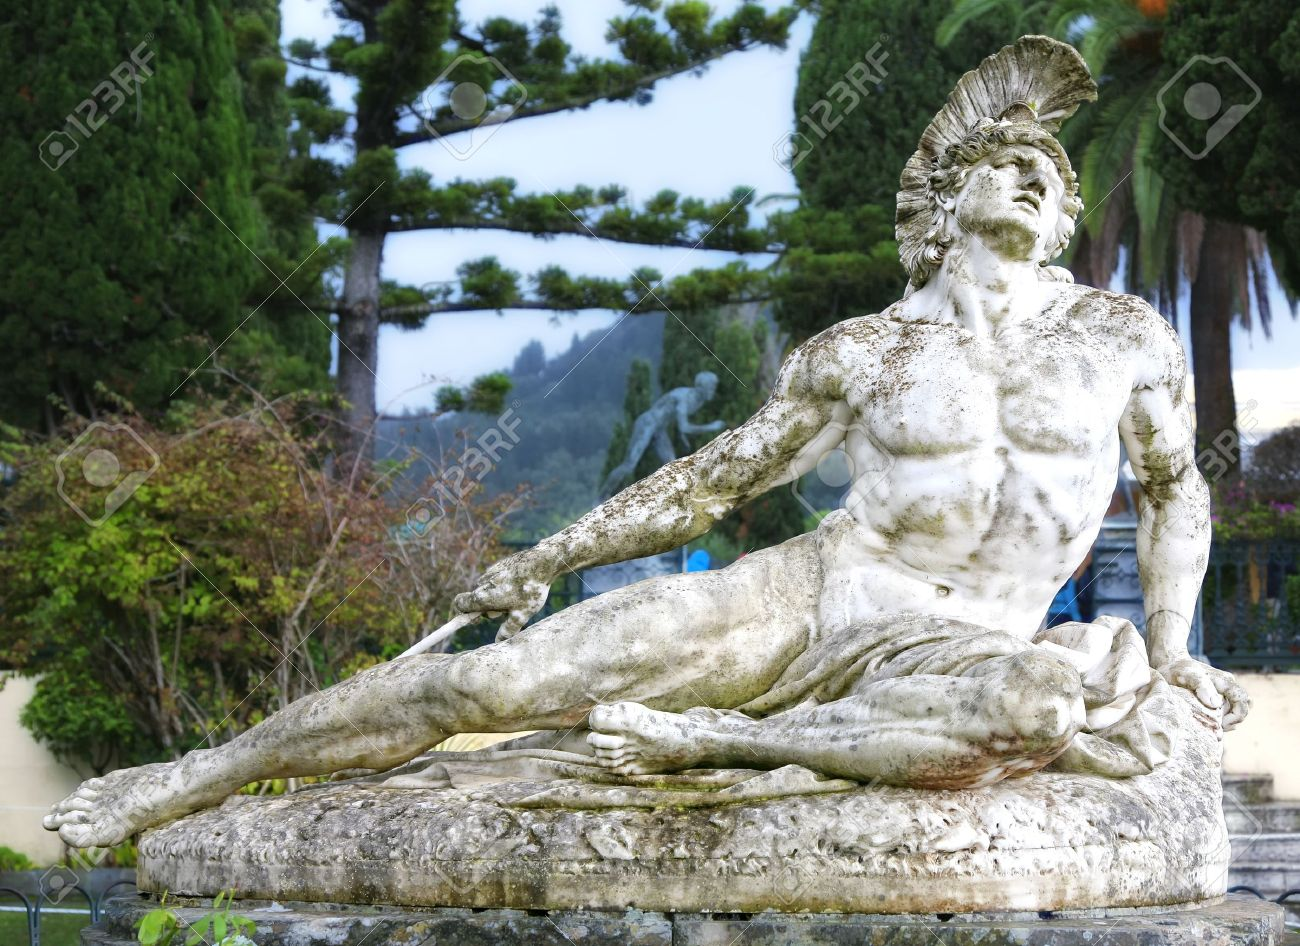 Statue of Achilles dying, shot in the foot with an arrow. Located in the gardens of the Achillion Palace, Corfu, Greece. - 9673458